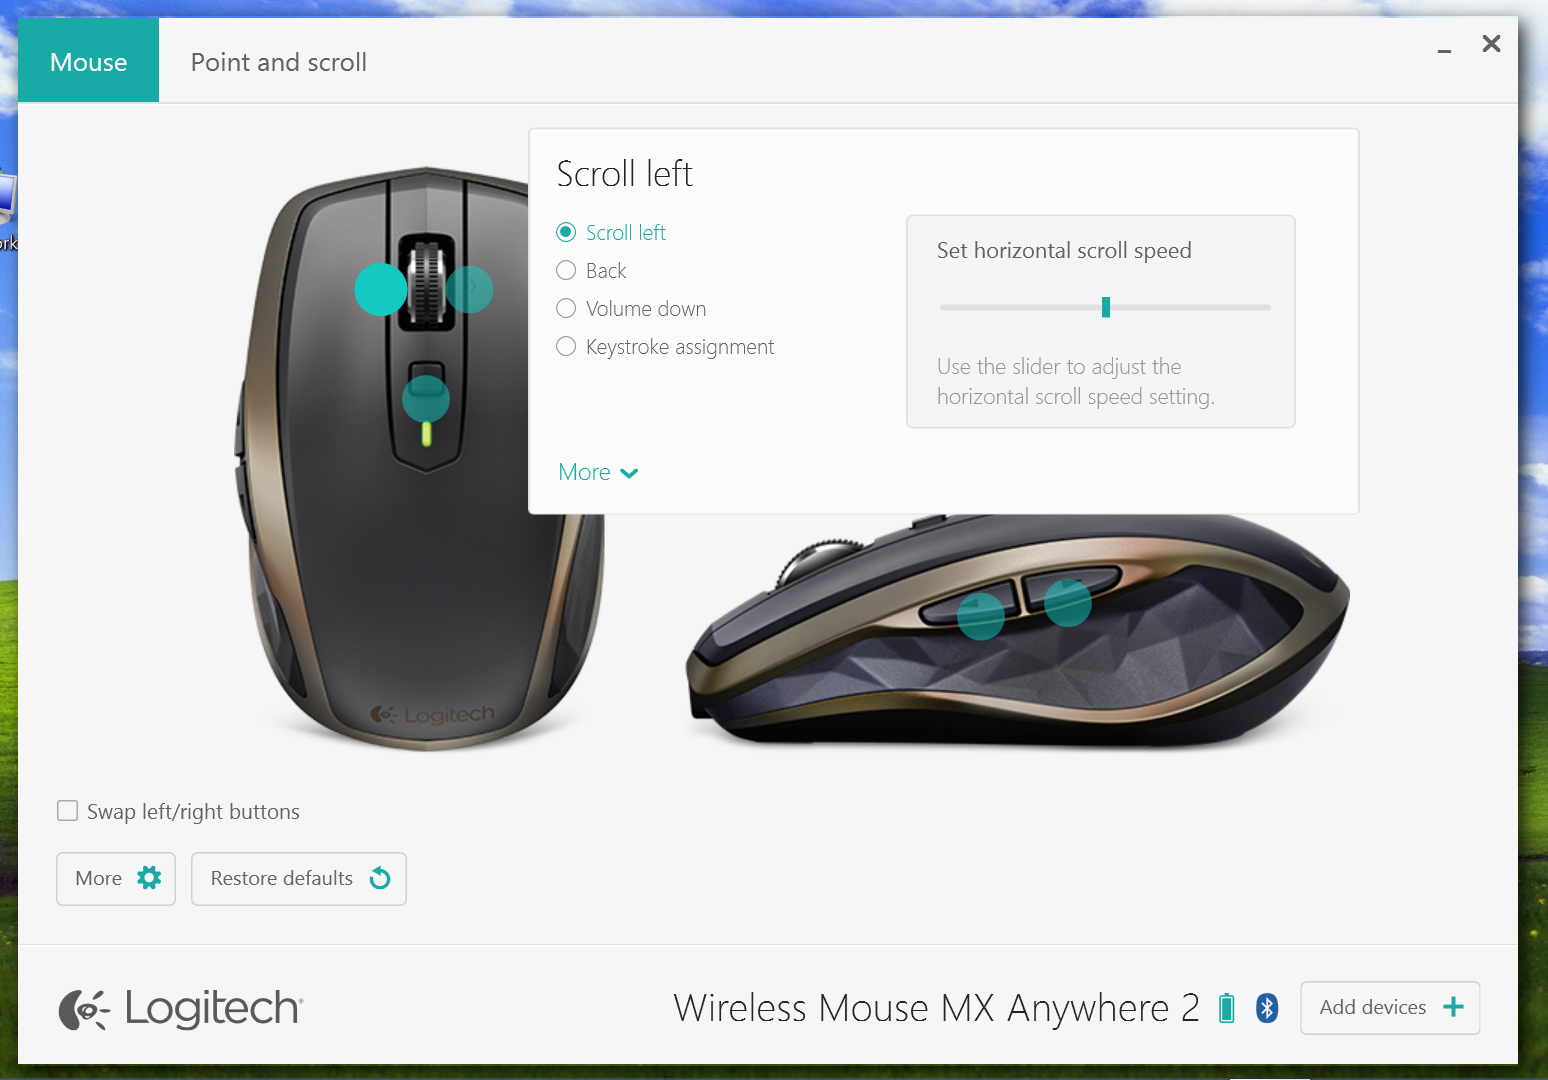 Gallery: Logitech Options Software for MX Anywhere 2 Wireless Mobile